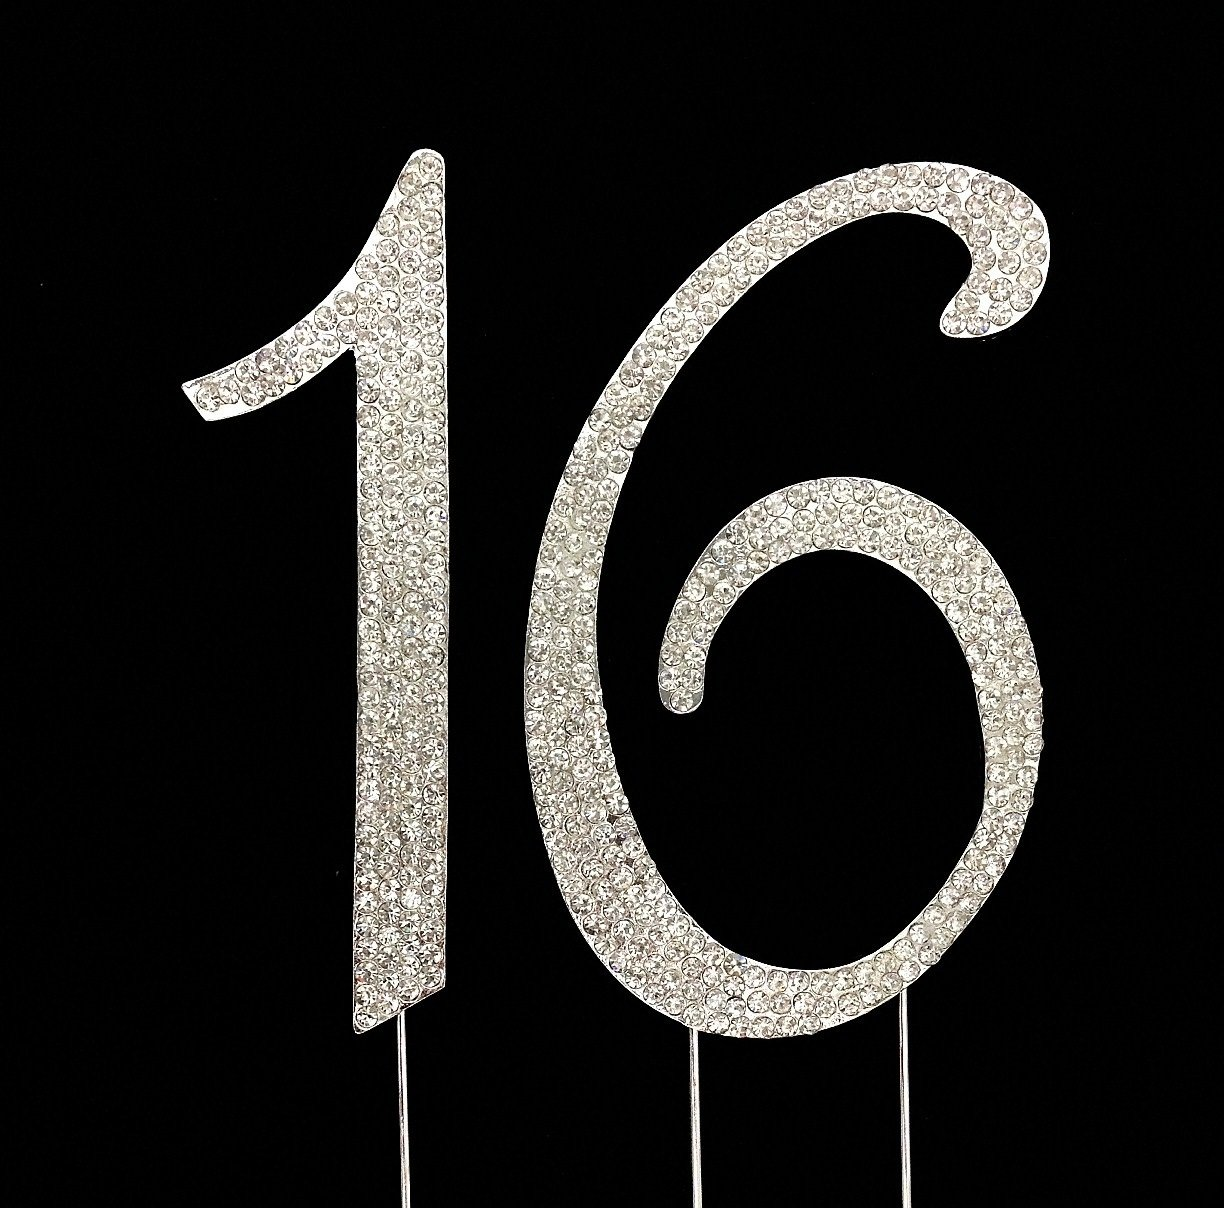 Number 16 for 16th Birthday or Anniversary Cake Topper Party Decoration Supplies, Sweet 16 Birthday, Silver, 4.5 Inches Tall CC-NRCT-2 16th Year Cake Topper